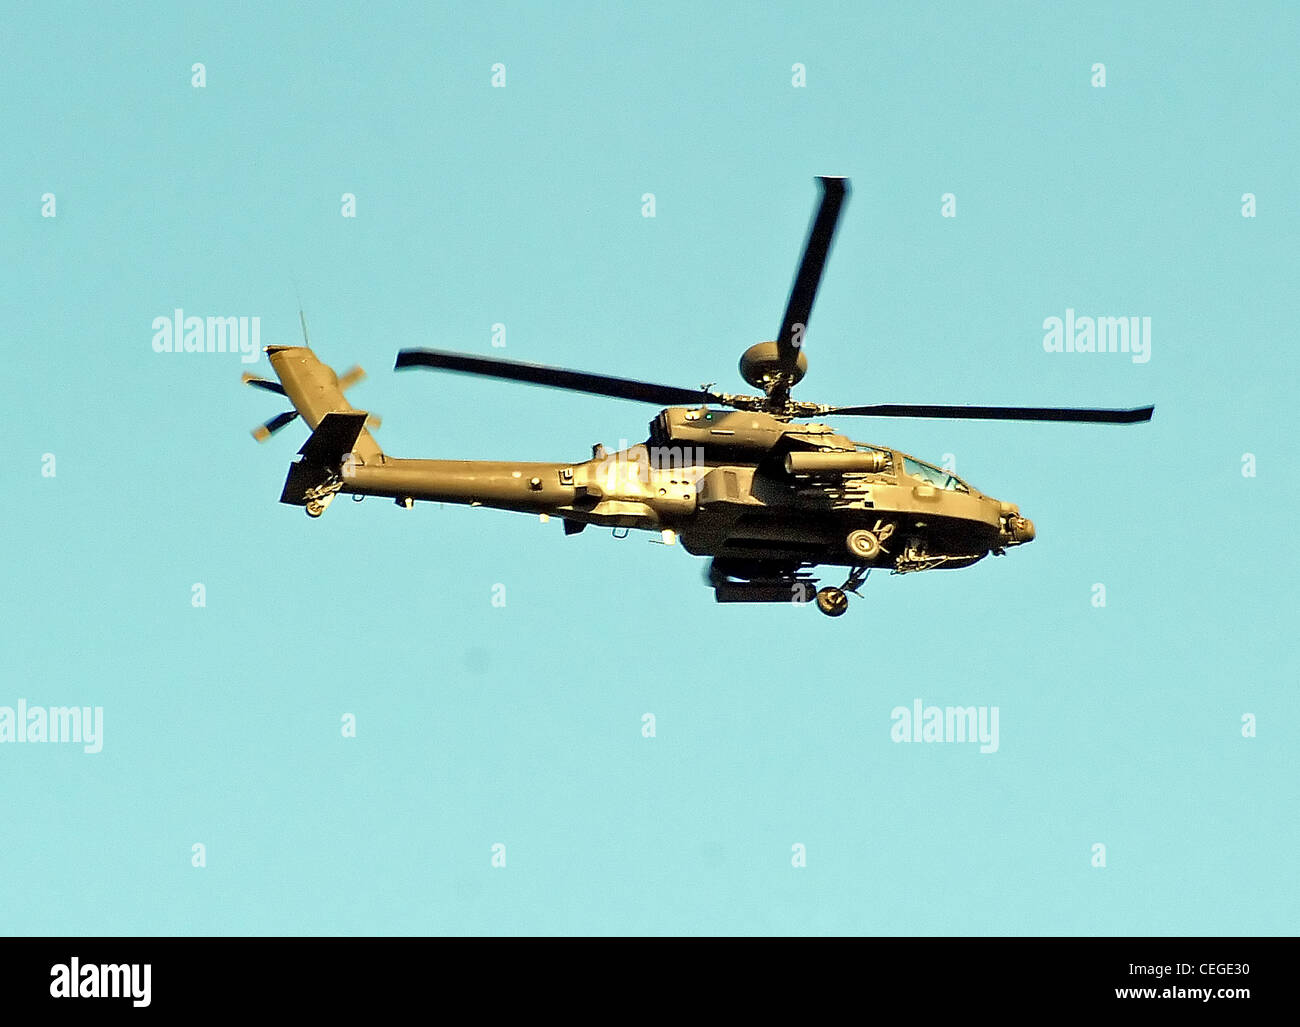 Elicottero D Attacco Cinese : Boeing ah apache immagini fotos